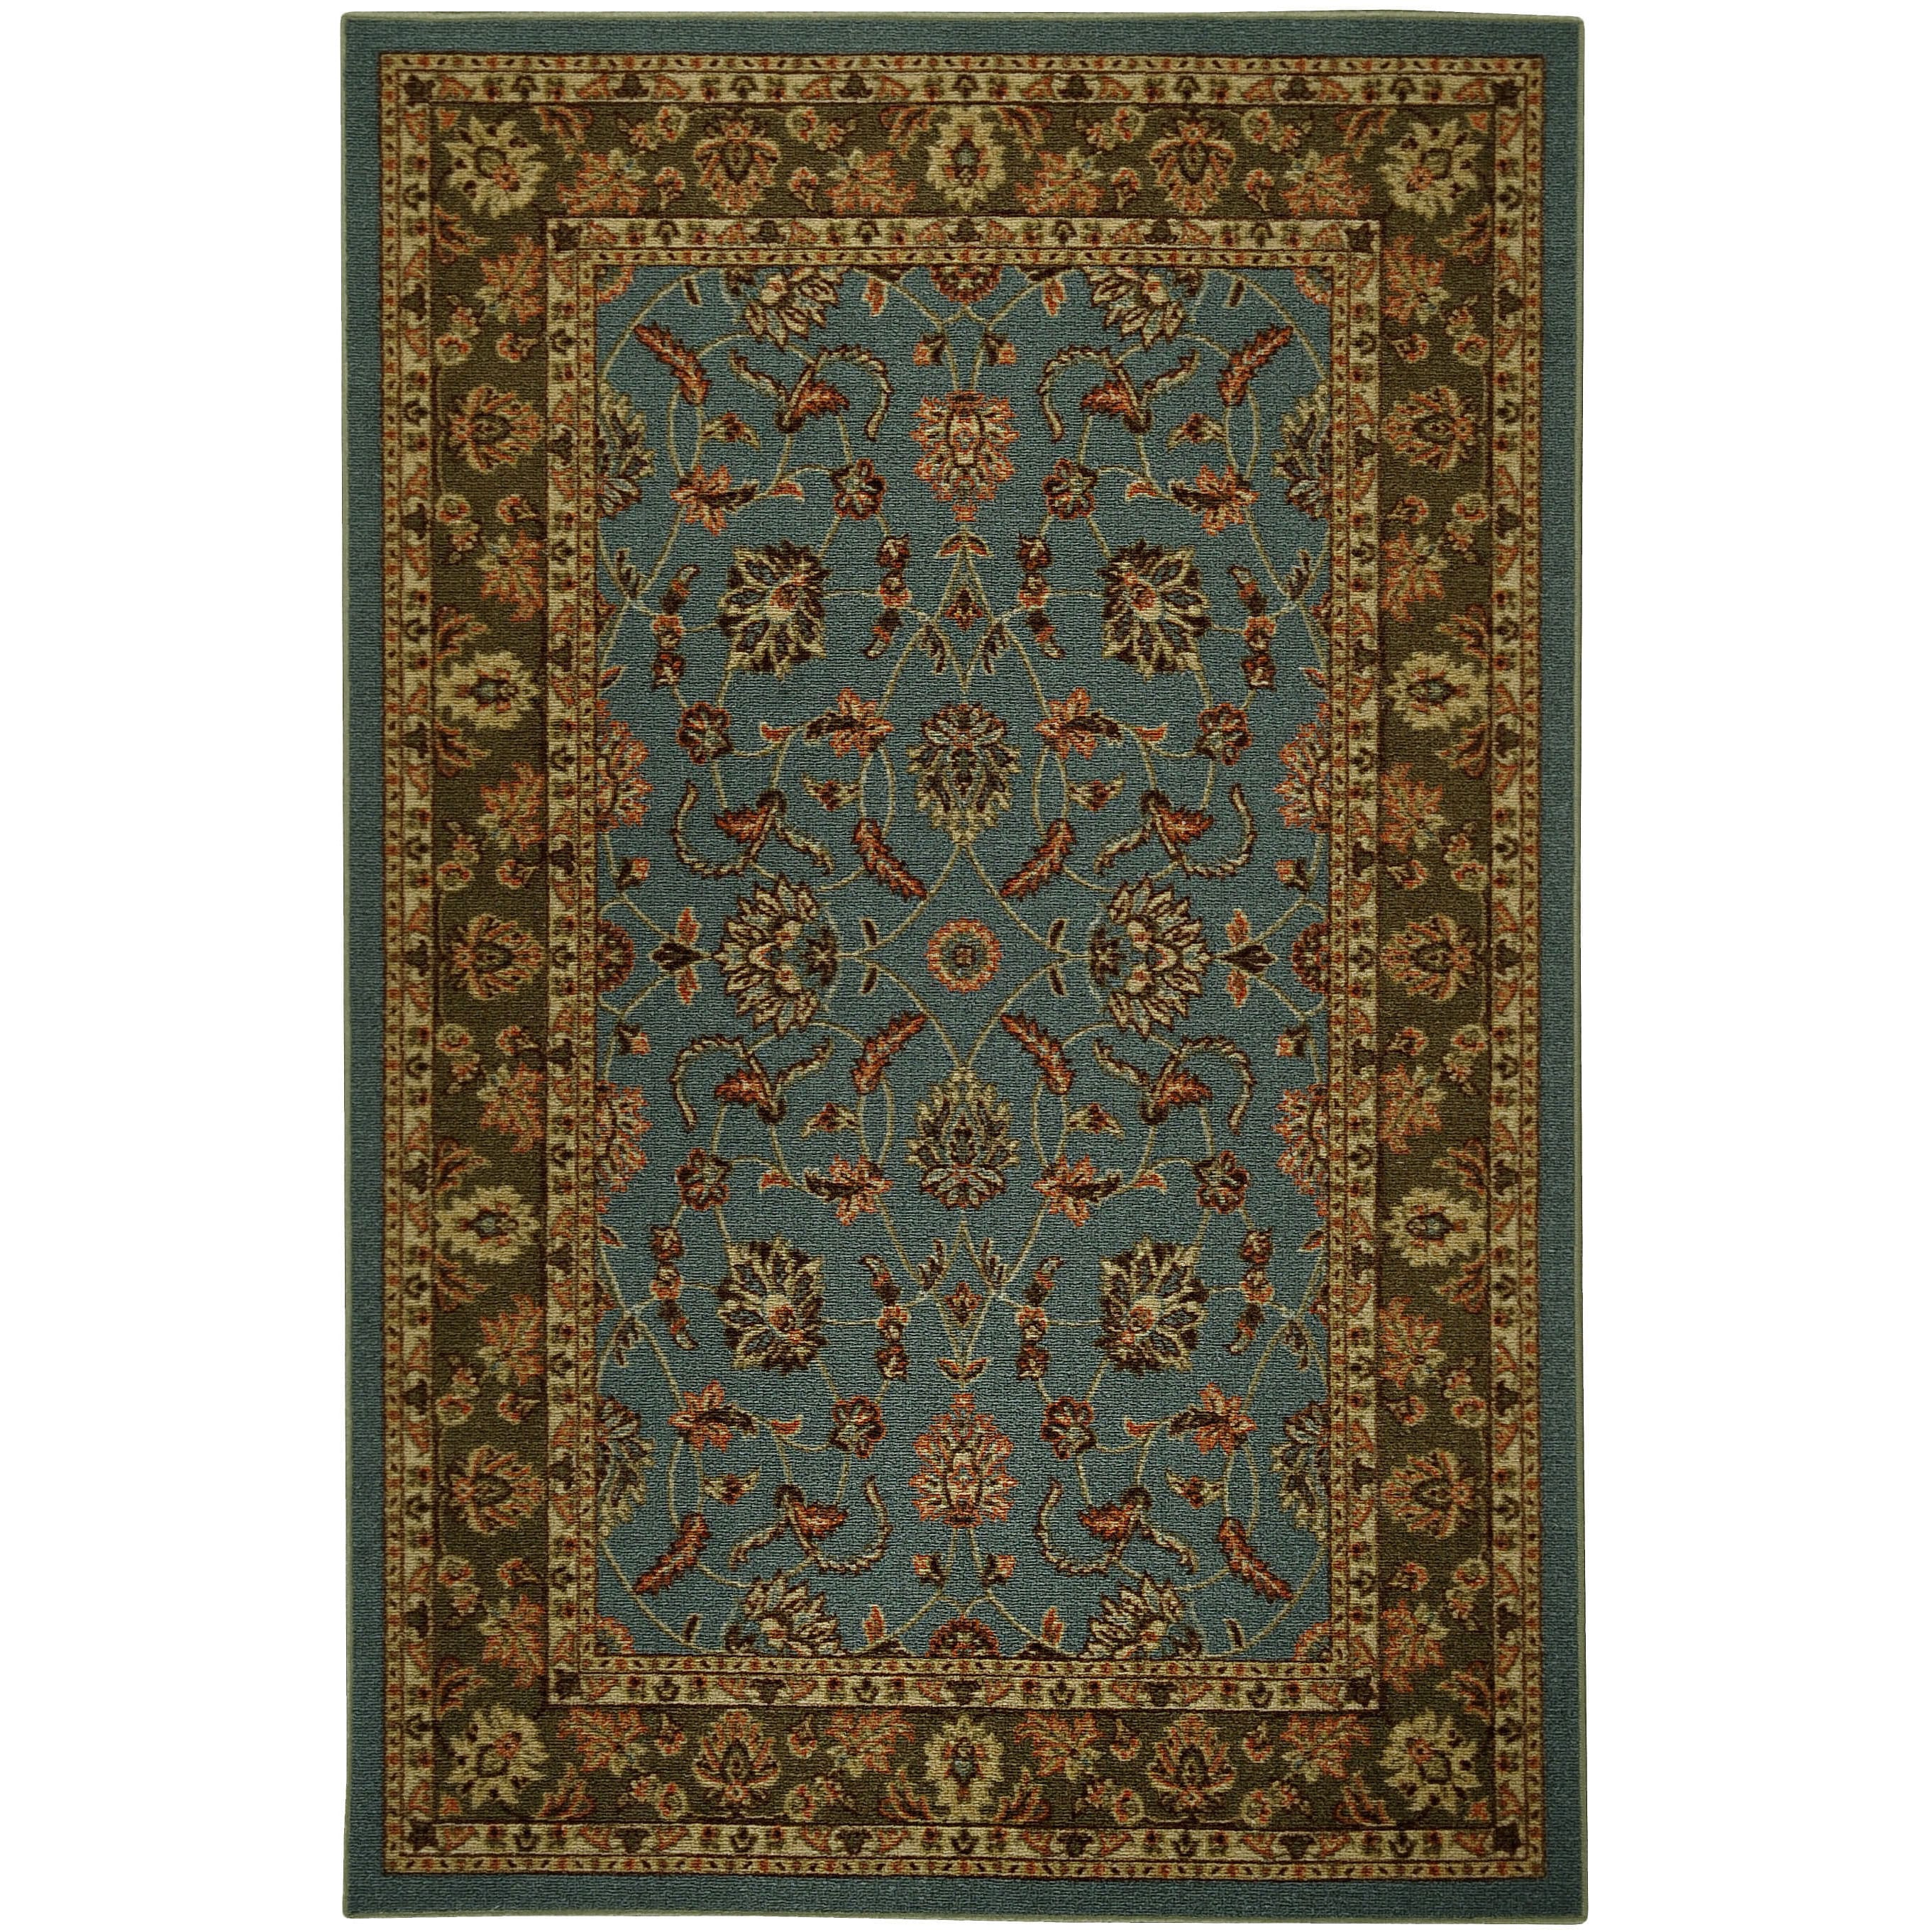 Rubber Back Ocean Blue Traditional Floral Non-Skid Area Rug (5' x 6'6) at Sears.com